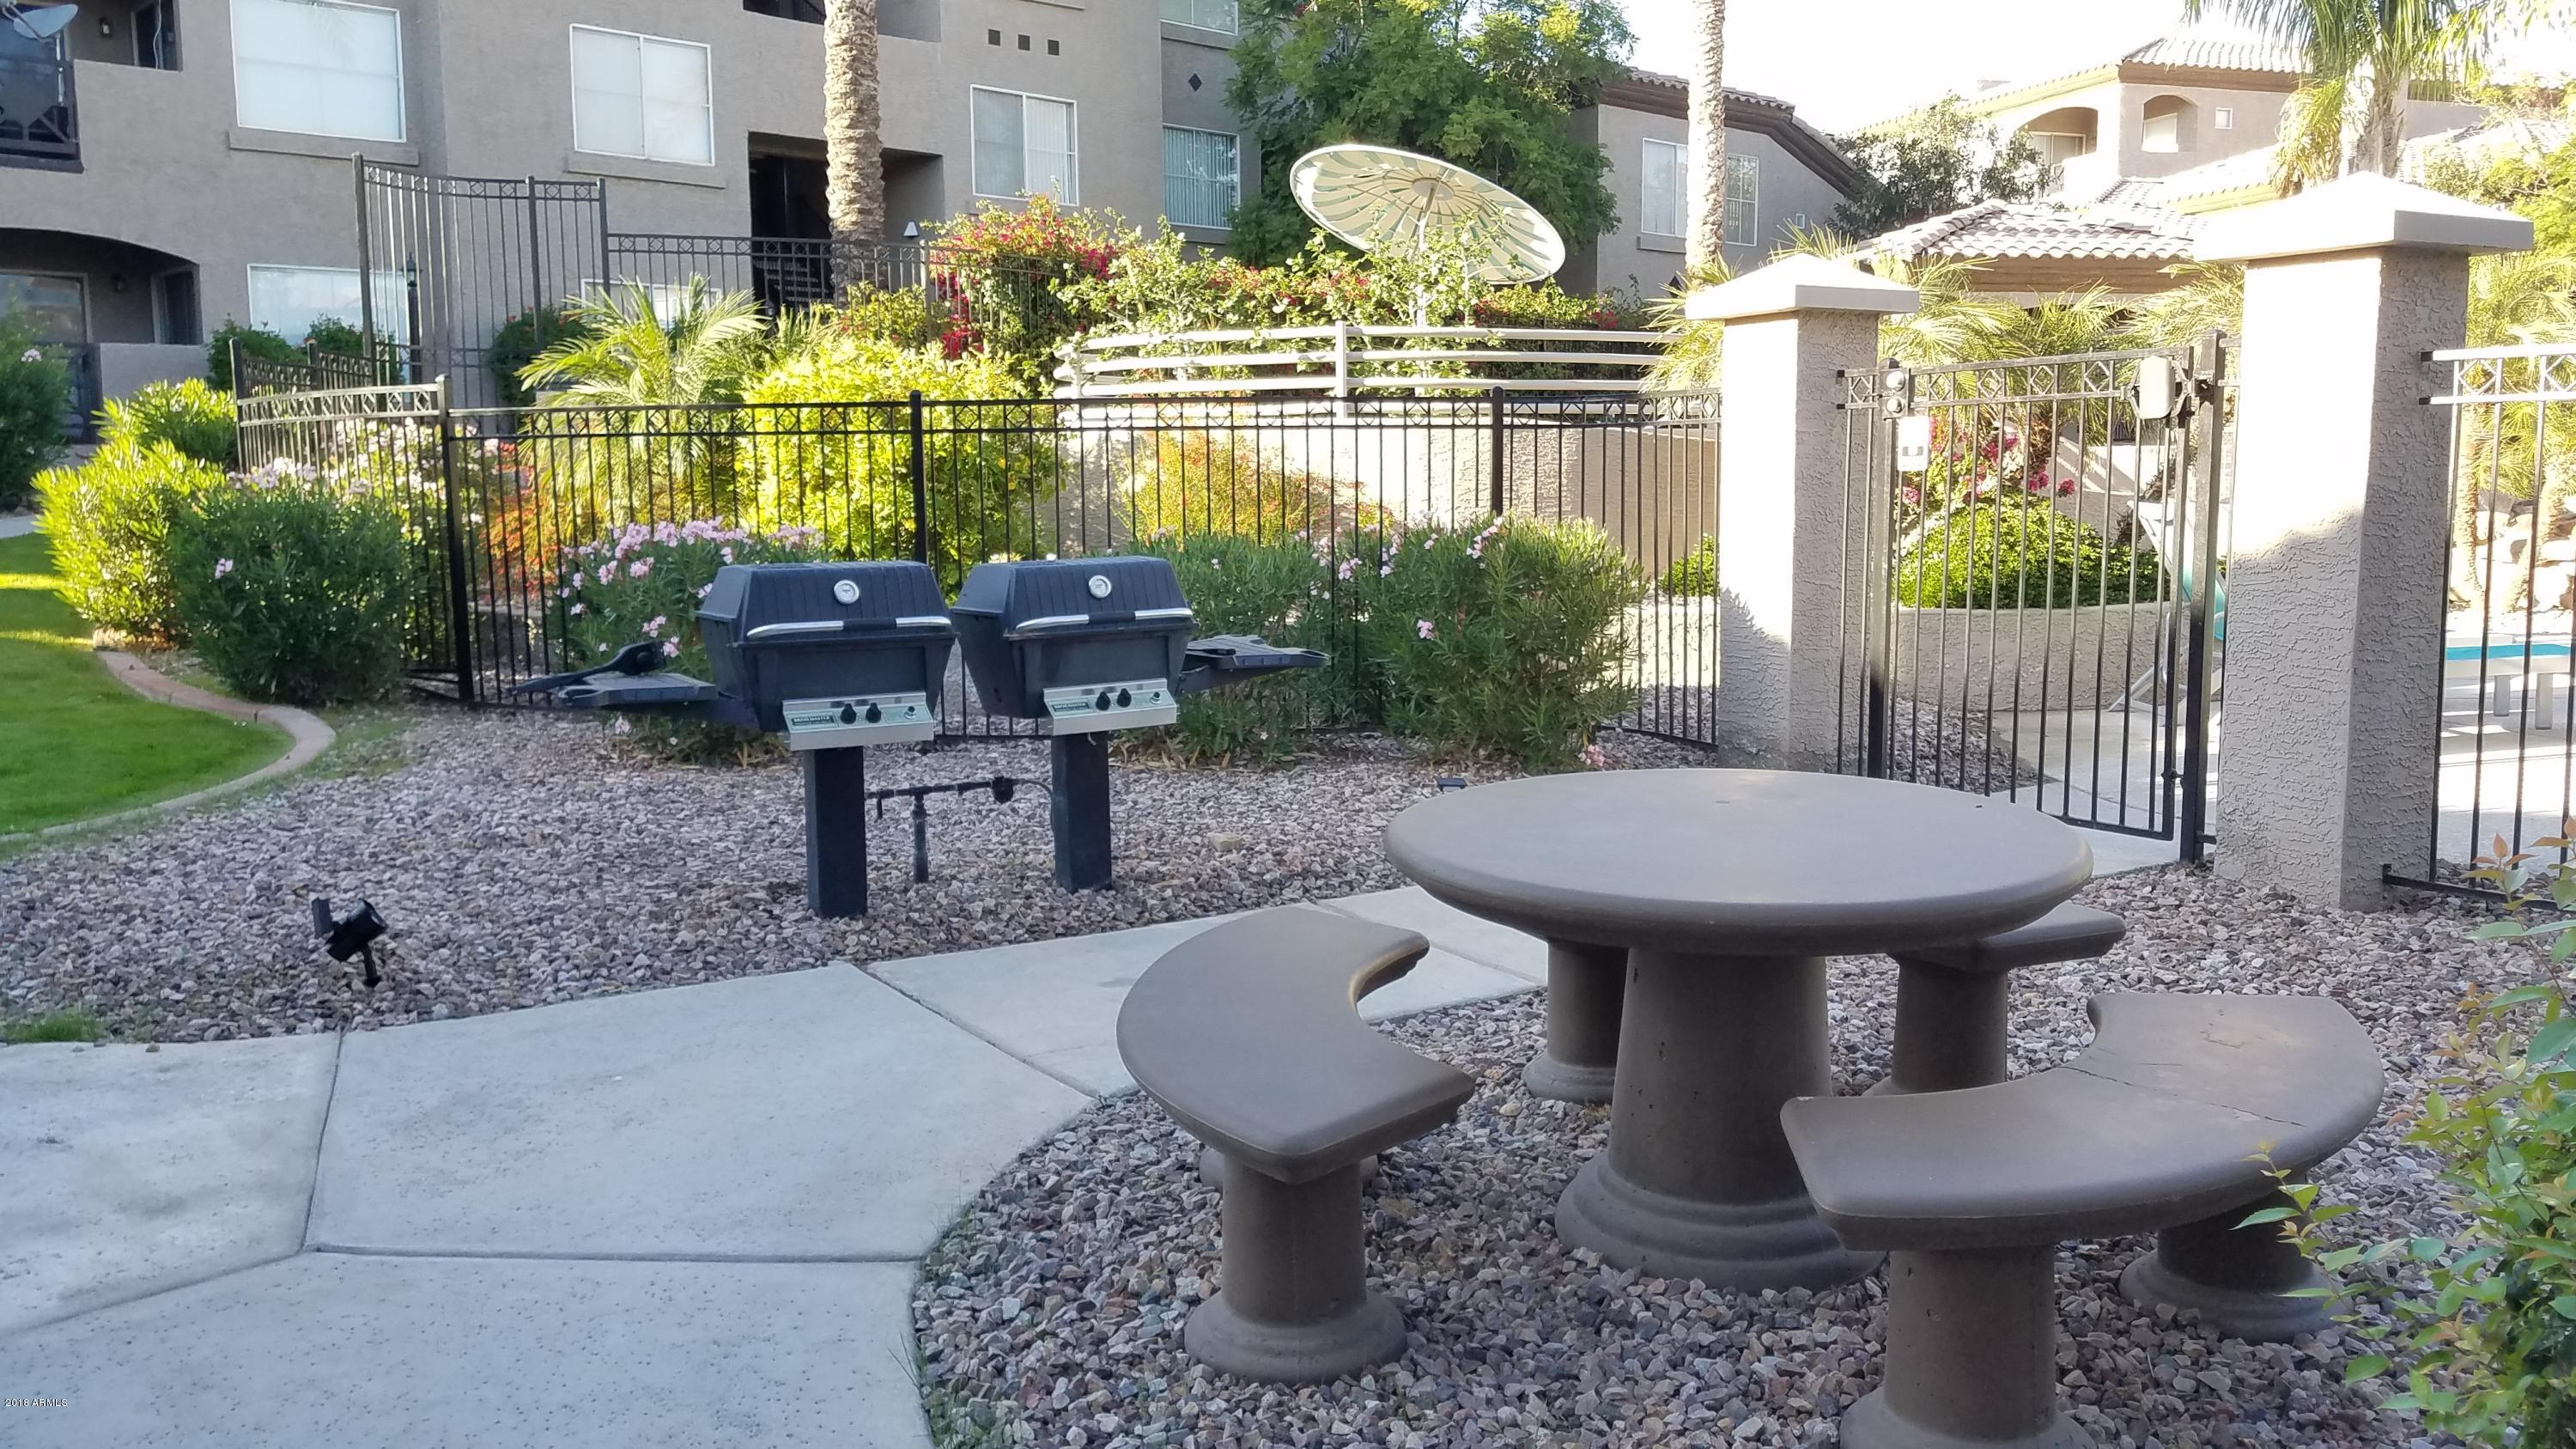 MLS 5845334 3236 E CHANDLER Boulevard Unit 3075, Phoenix, AZ Ahwatukee Community AZ Condo or Townhome